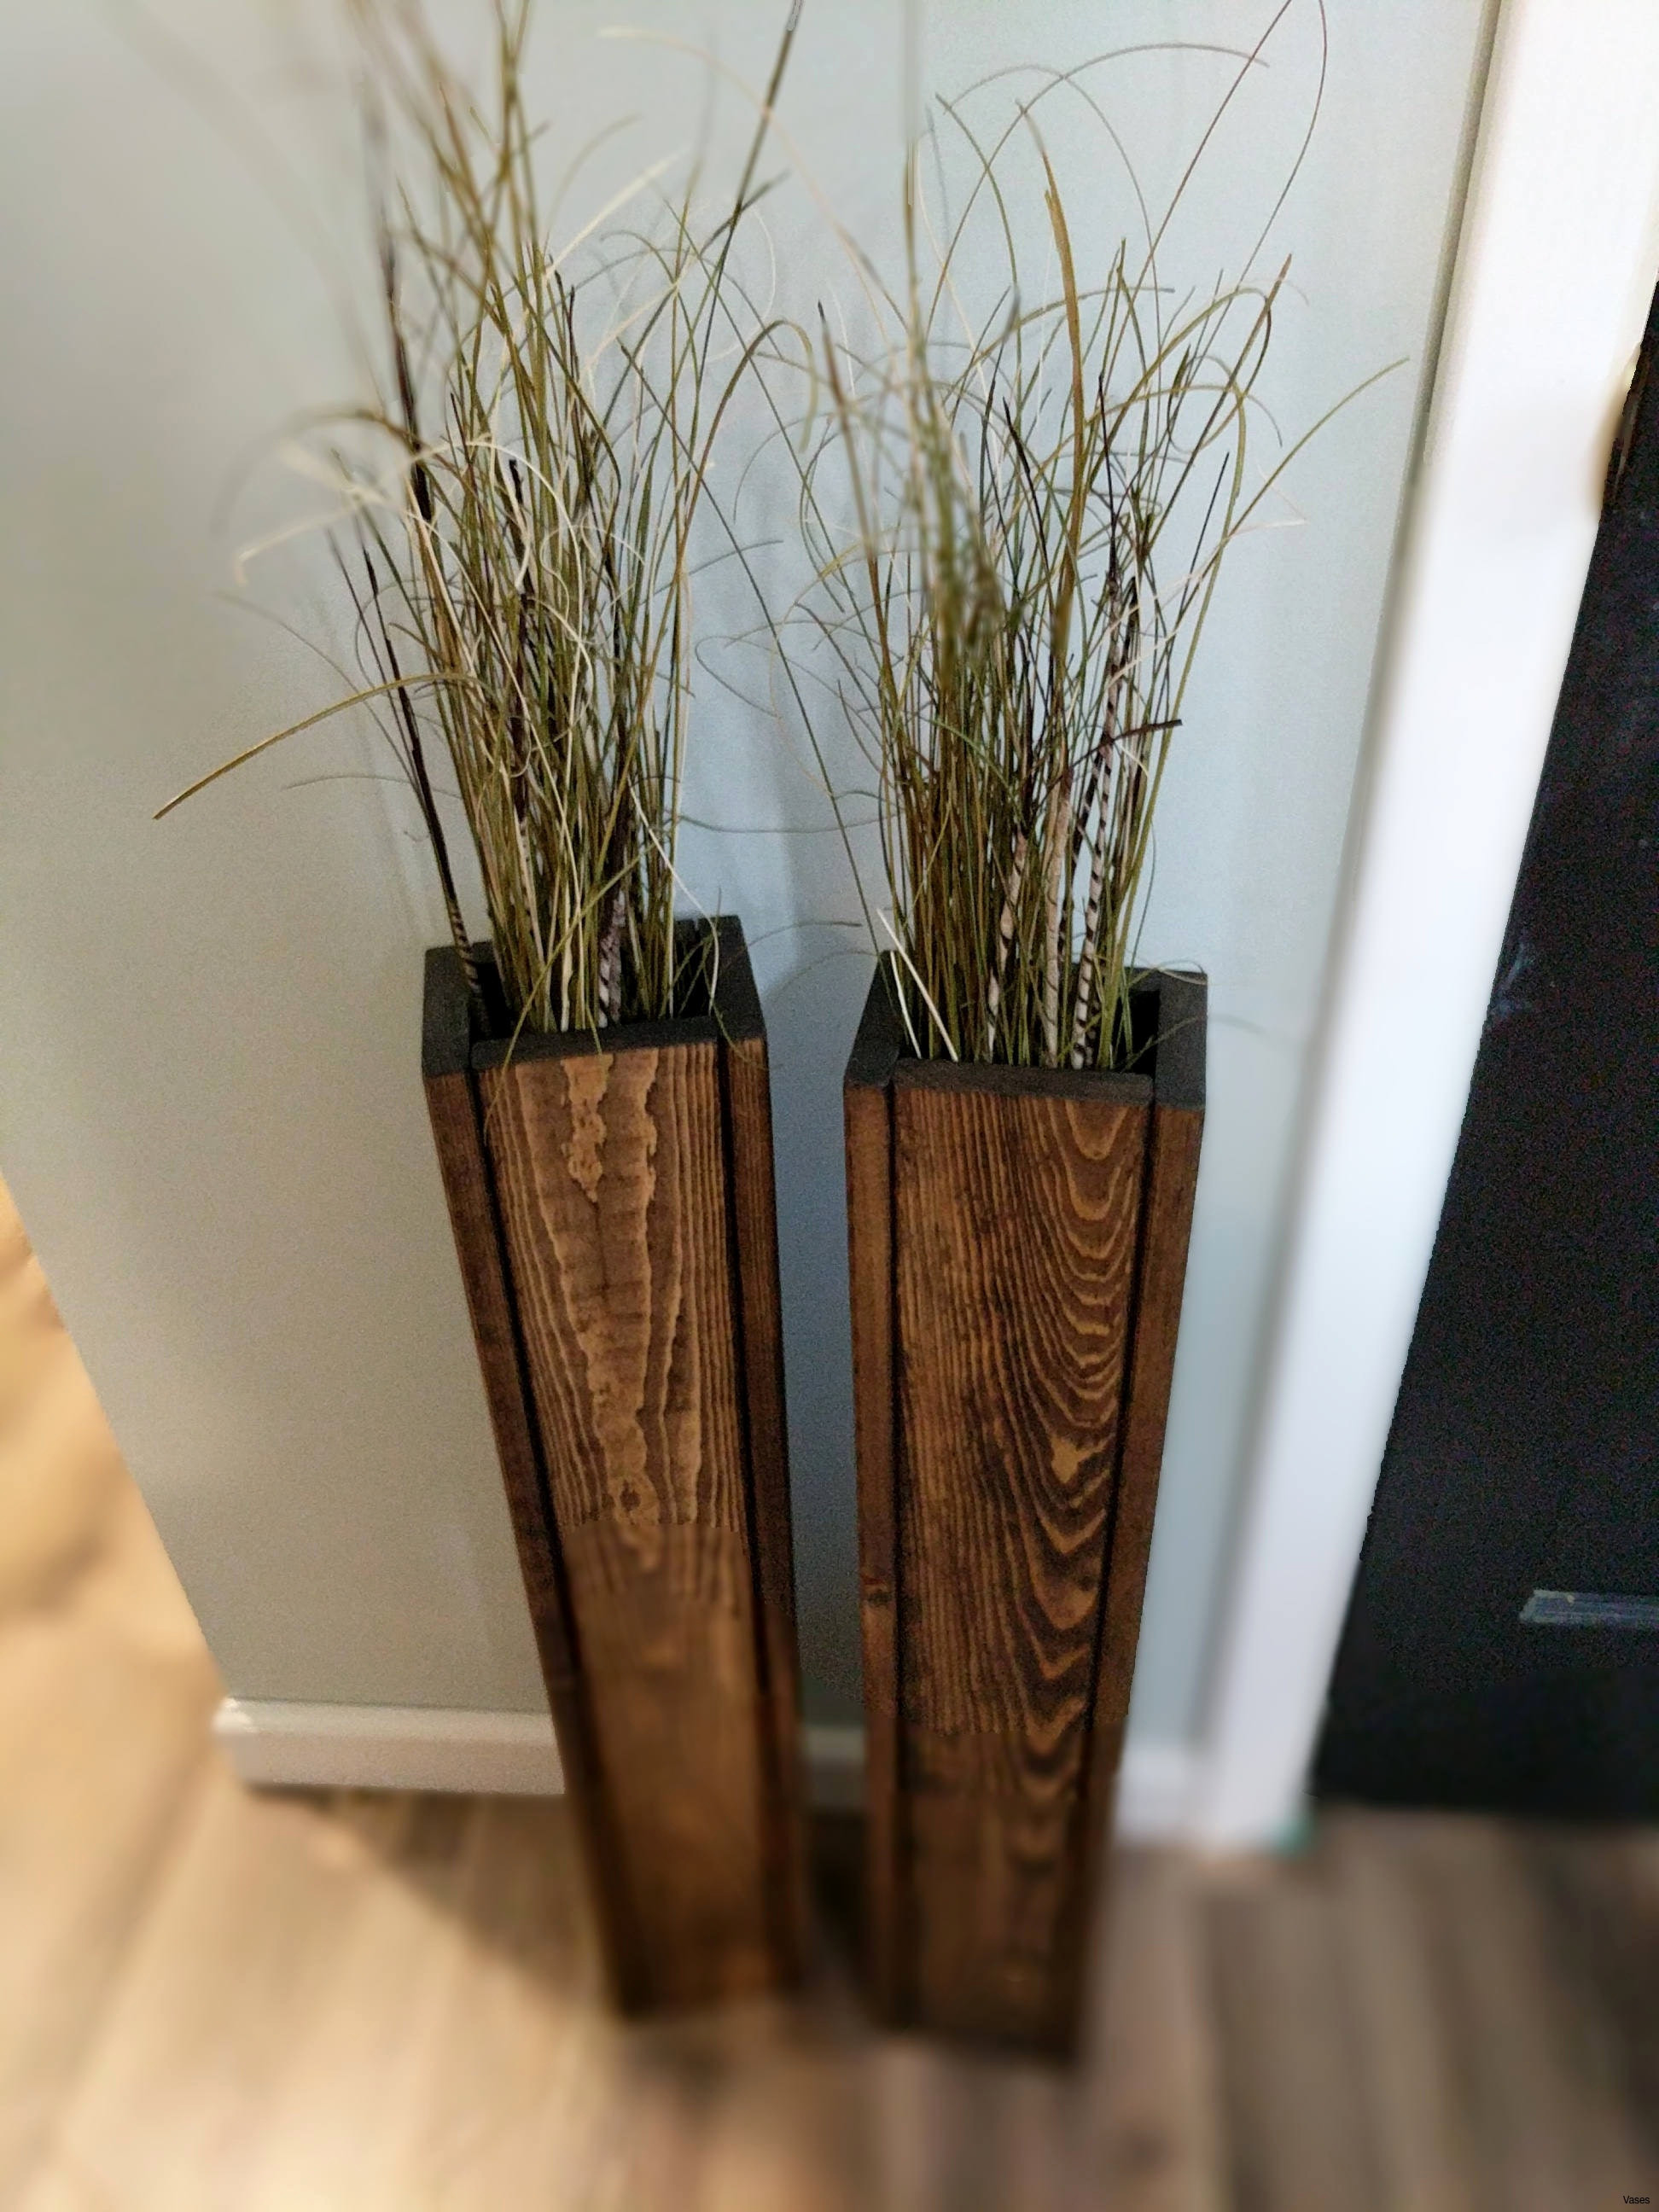 Hand Carved Wooden Vases Of Image Of Vases Set Of 3 Vases Artificial Plants Collection with 25 New Floor Vase Set 3